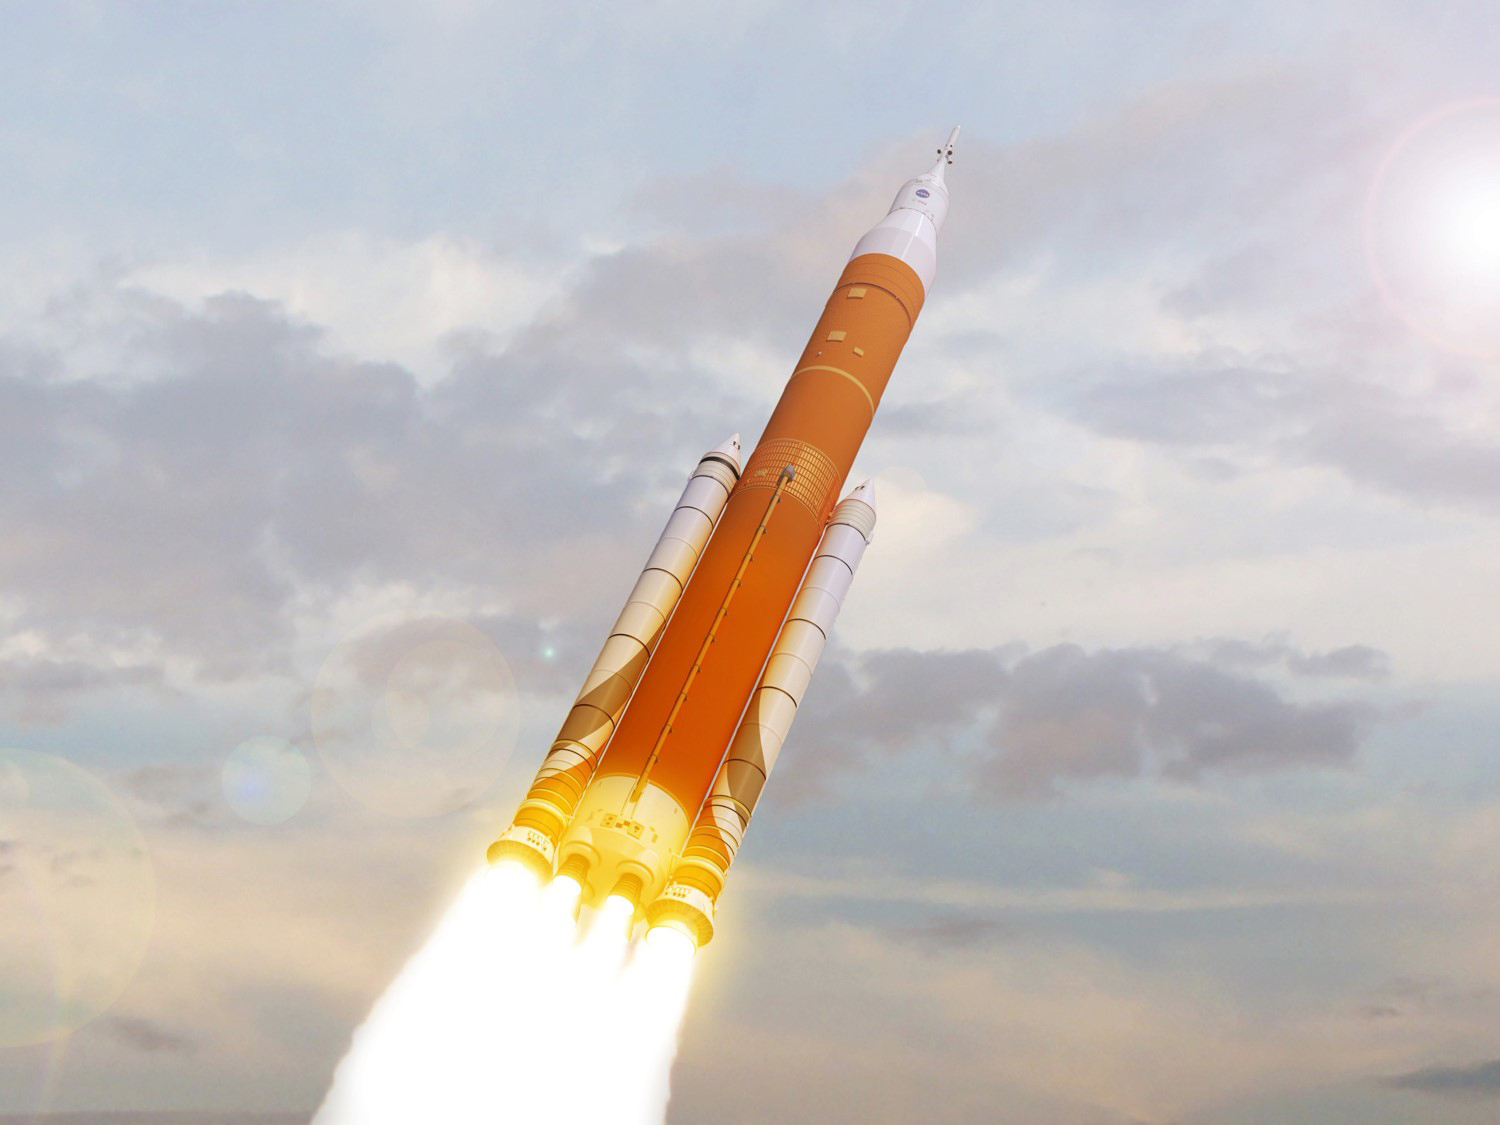 NASA Admits Its Budget Can't Afford To Send Humans To Planet Mars